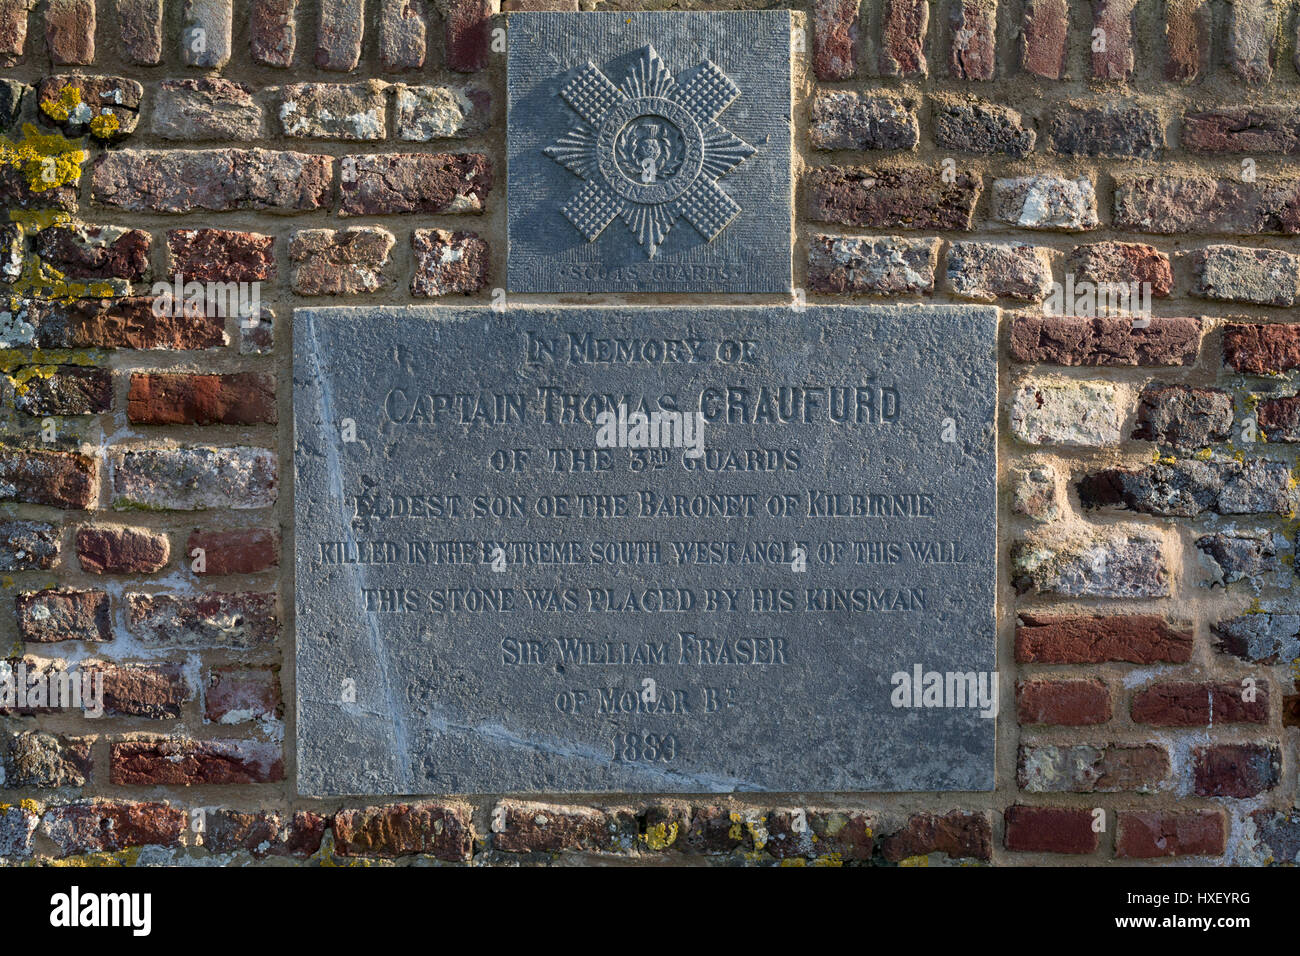 A memorial for Captain Thomas Craufurd of the 3rd Guards who died at Hougoumont Farm during the Battle of Waterloo, - Stock Image